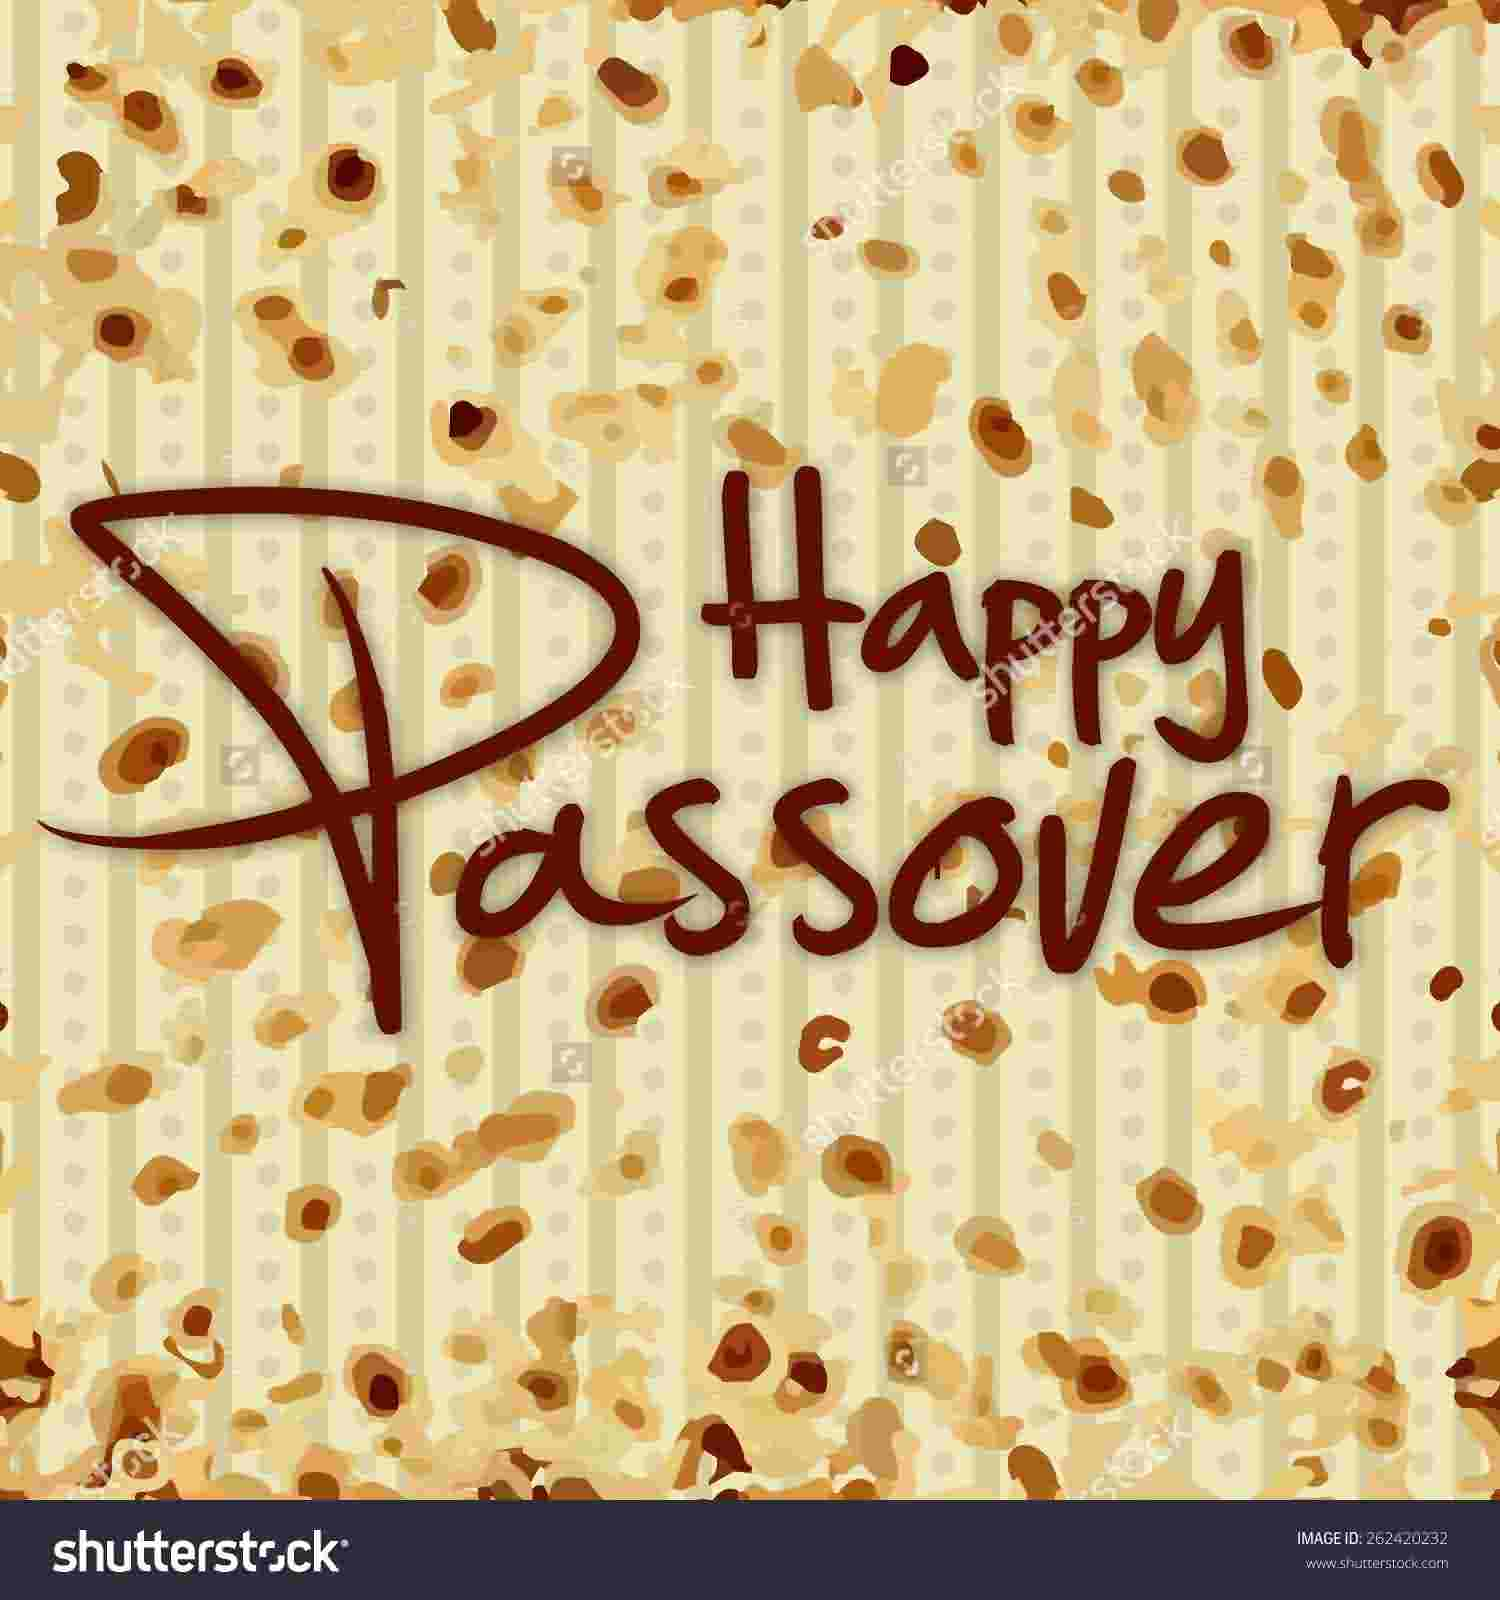 111-Happy Passover Wishes